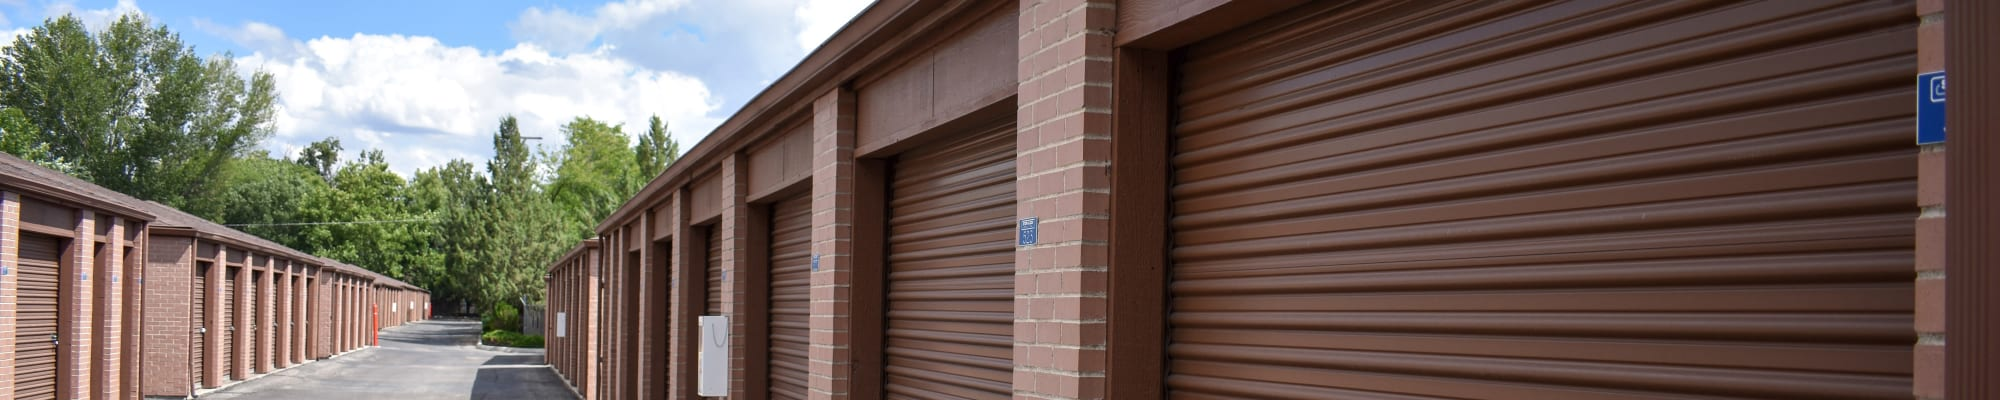 Features at STOR-N-LOCK Self Storage in Boise, Idaho